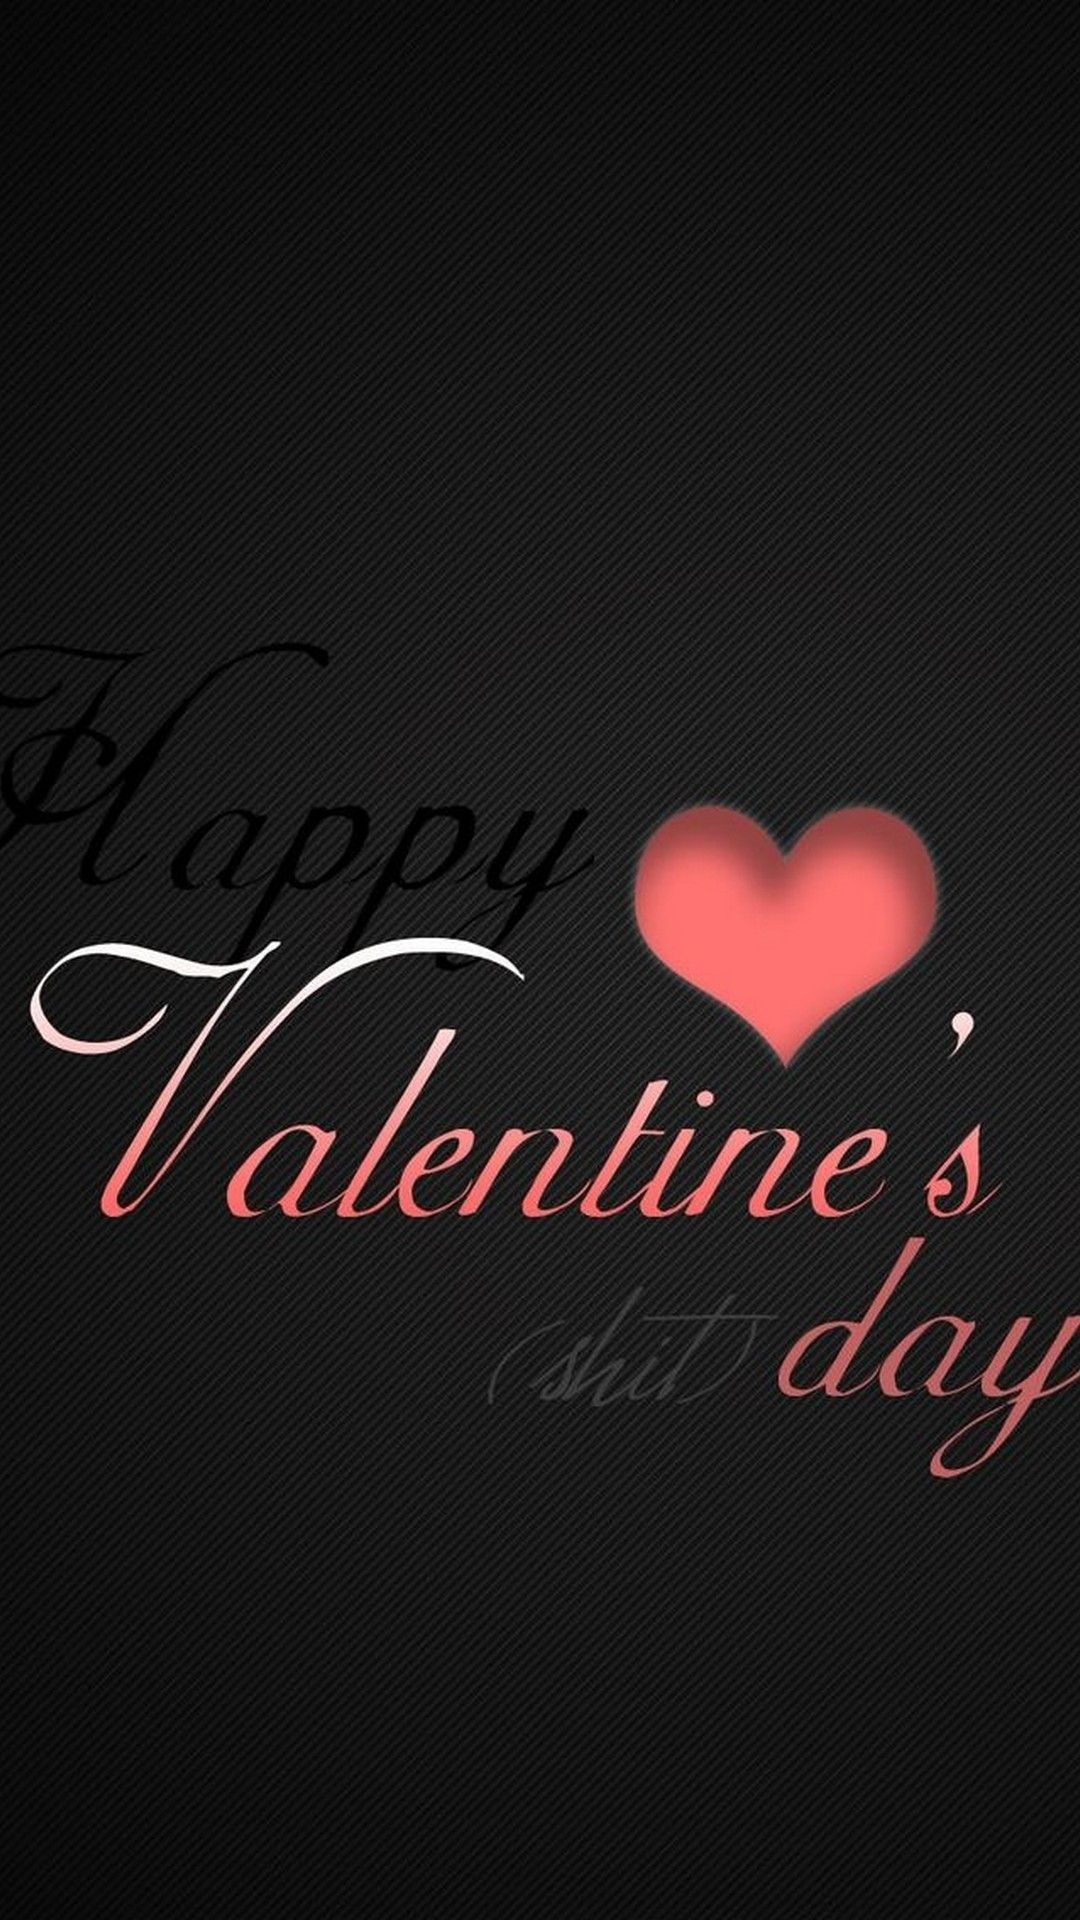 1080x1920 Valentine Day iPhone Wallpaper Black | iPhoneWallpapers ...